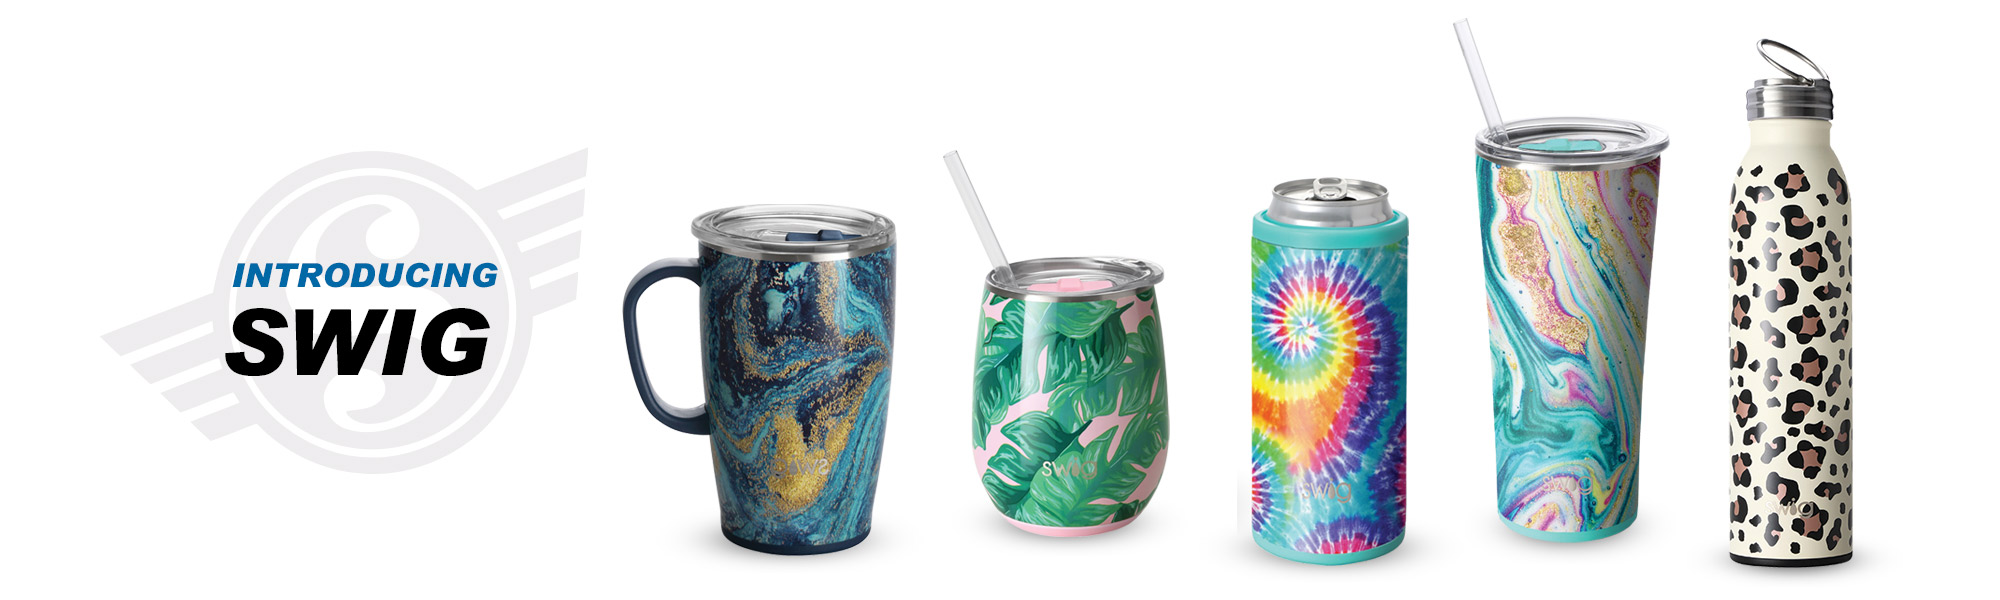 https://www.spiritproducts.com/products/product-category/drinkware/brands/swig/